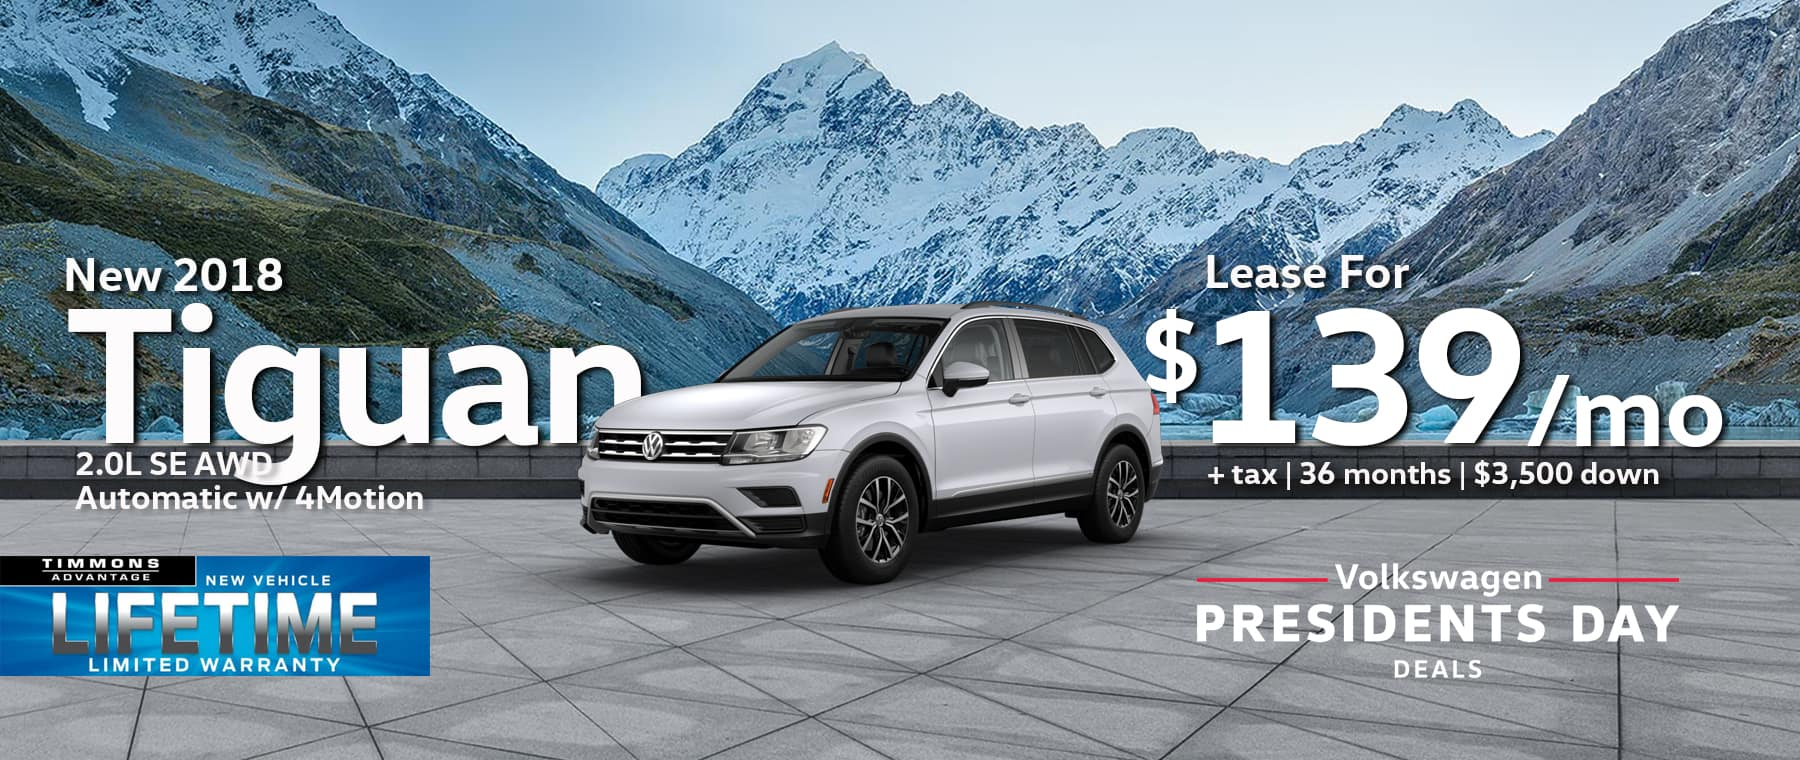 New 2018 Volkswagen Tiguan 2.0L SE AWD Automatic w/4MOTION